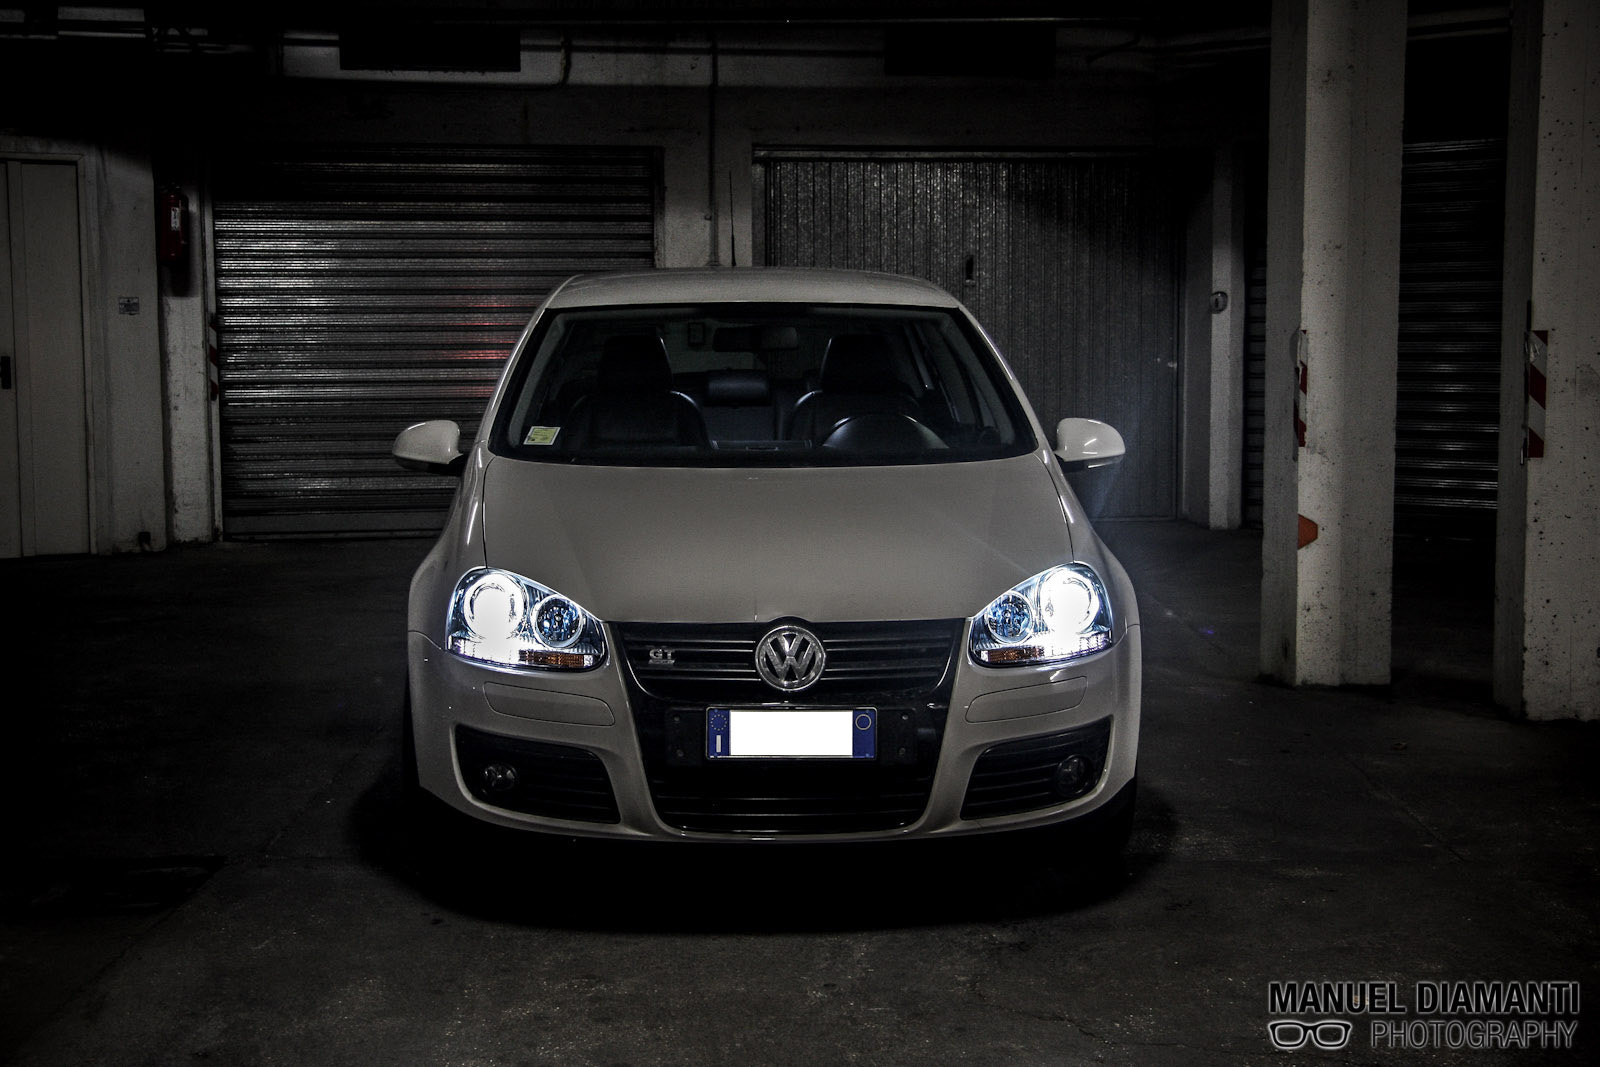 garage light vw golf 5 gt sport by manuel diamanti 500px. Black Bedroom Furniture Sets. Home Design Ideas